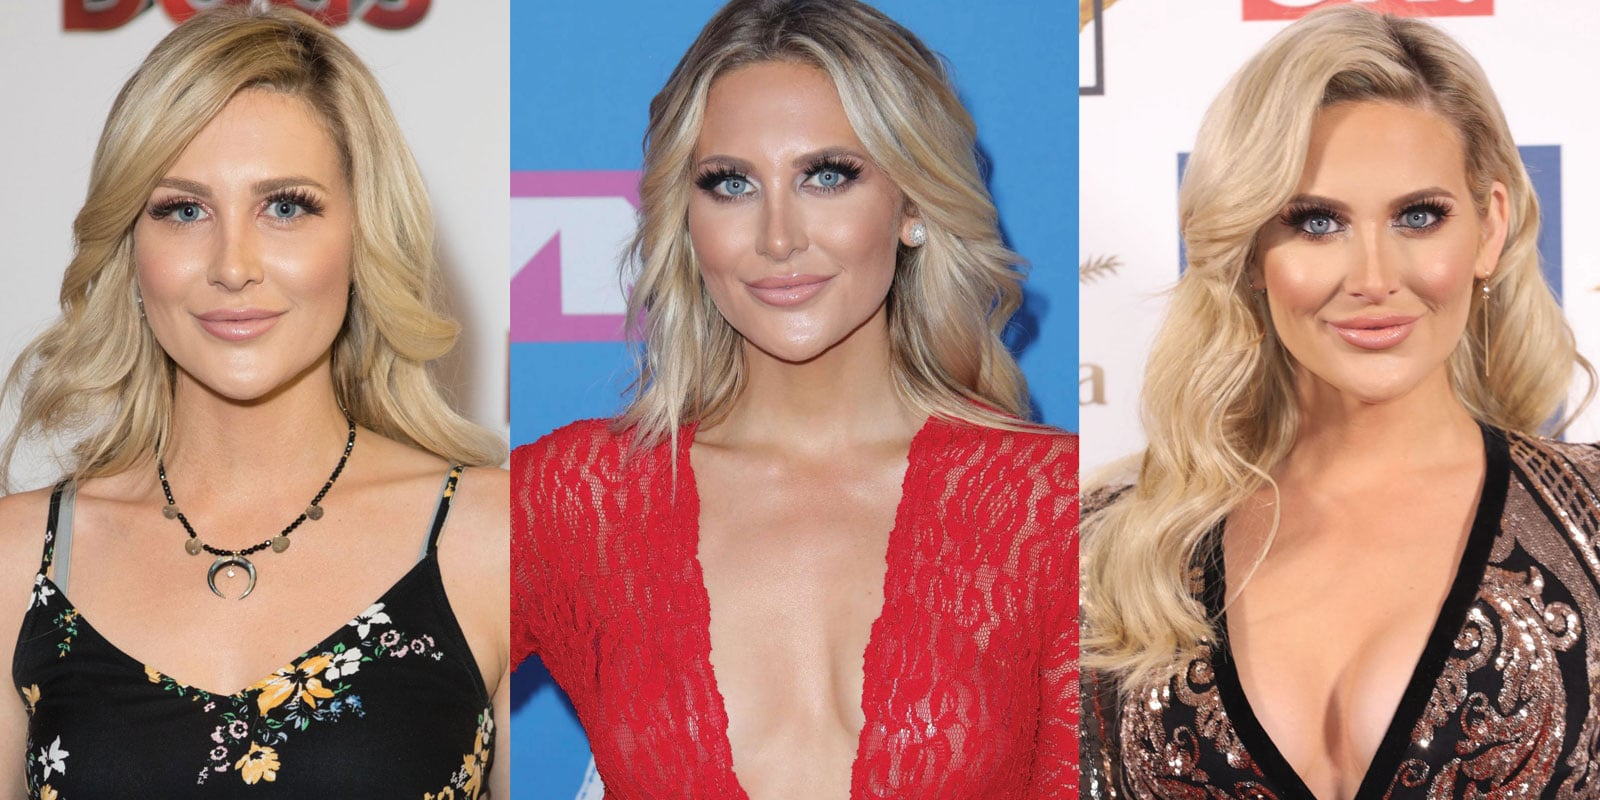 Stephanie Pratt Plastic Surgery Before and After 2021